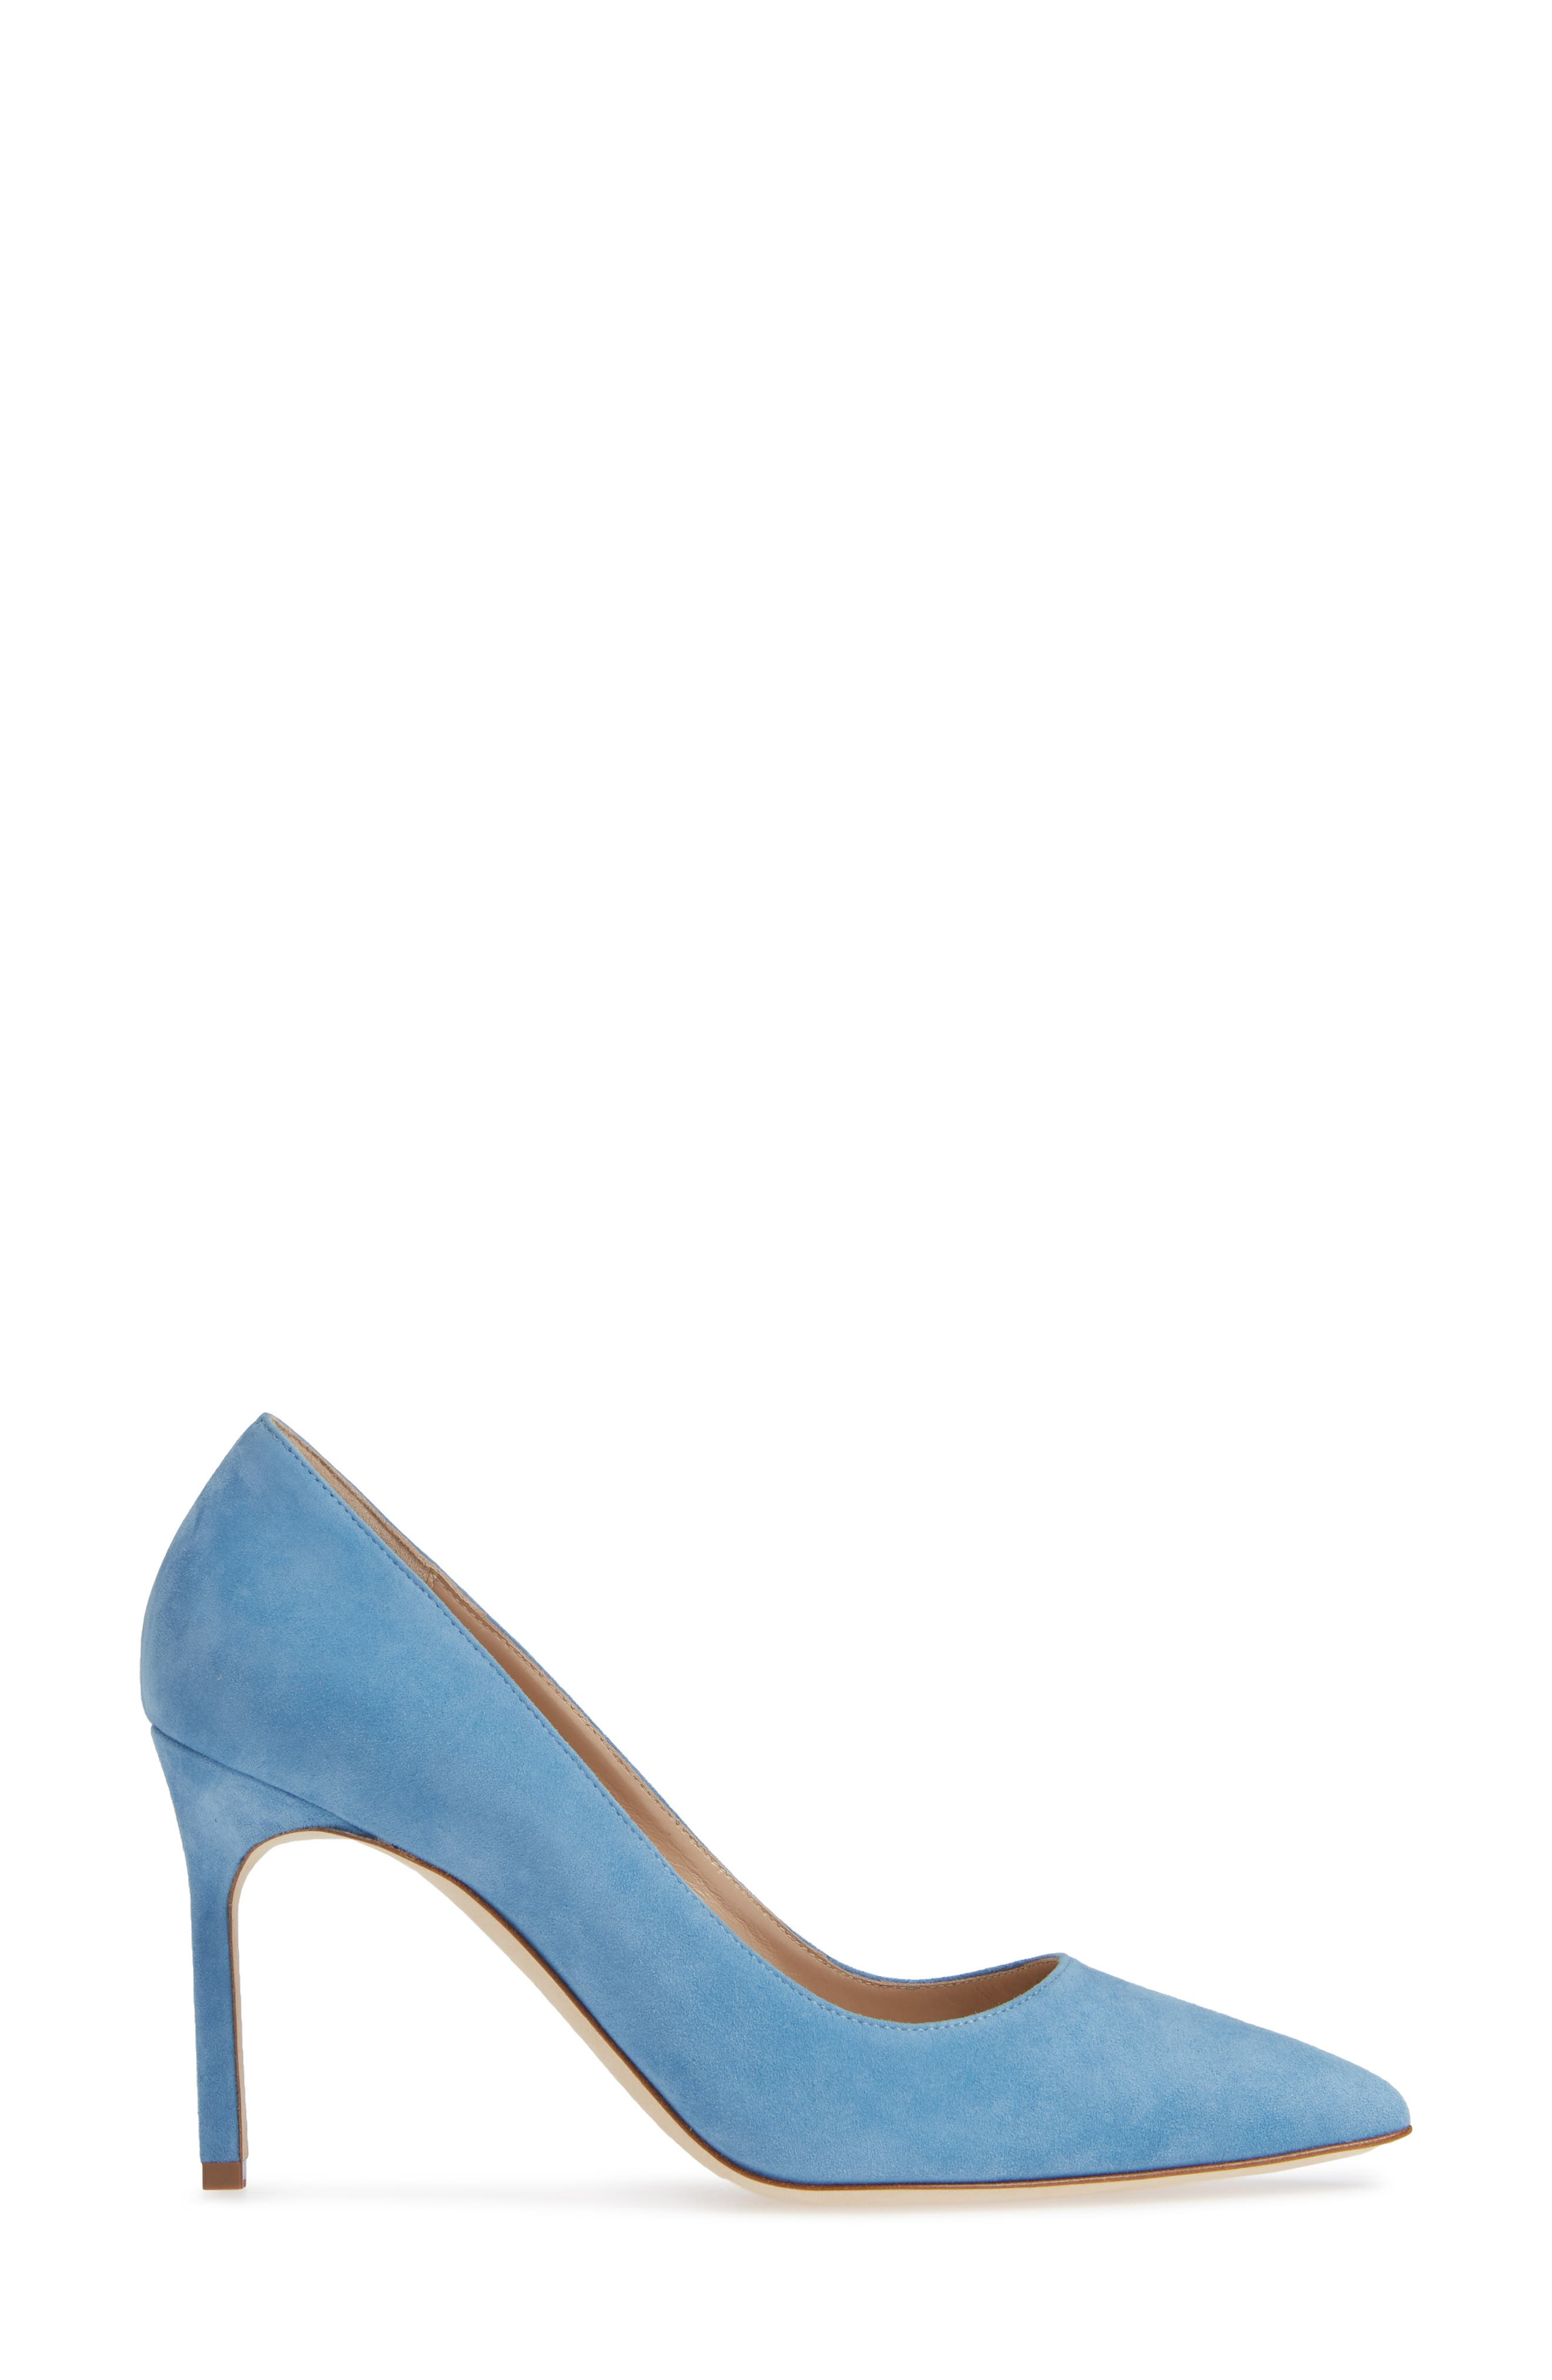 BB Pointy Toe Pump,                             Alternate thumbnail 3, color,                             POWDER BLUE SUEDE